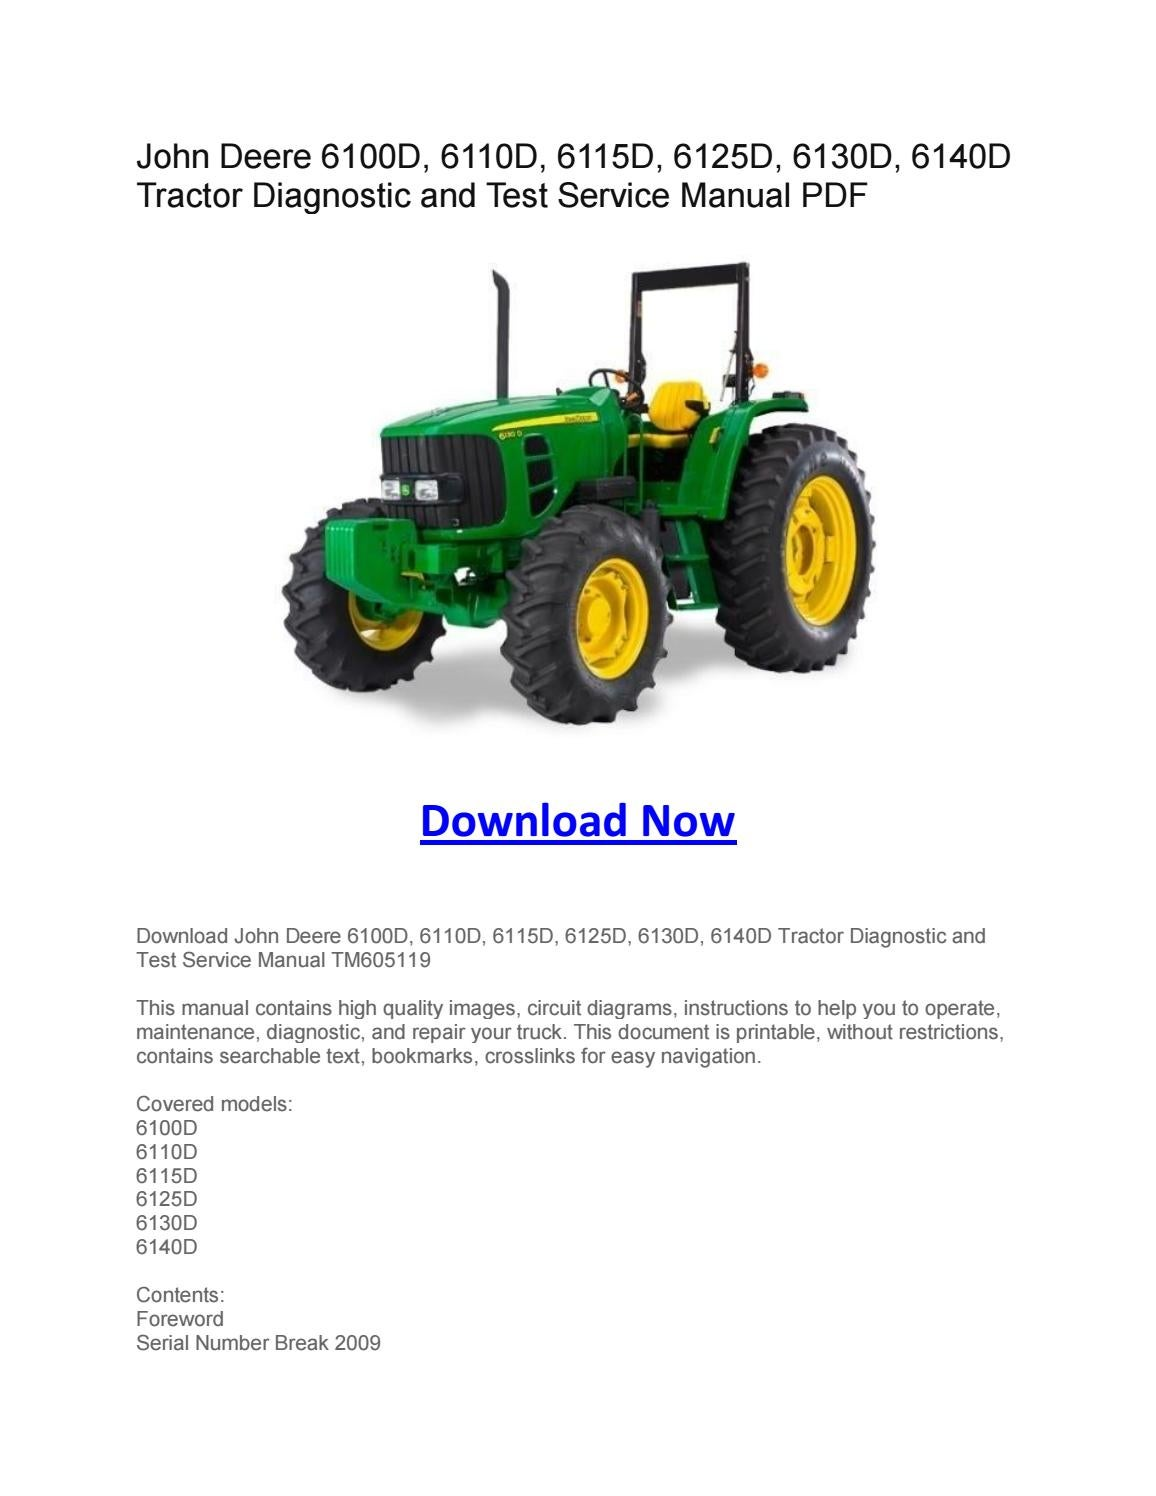 hight resolution of john deere 6100d 6110d 6115d 6125d 6130d 6140d tractor diagnostic and test service manual pdf by larry sprouse issuu